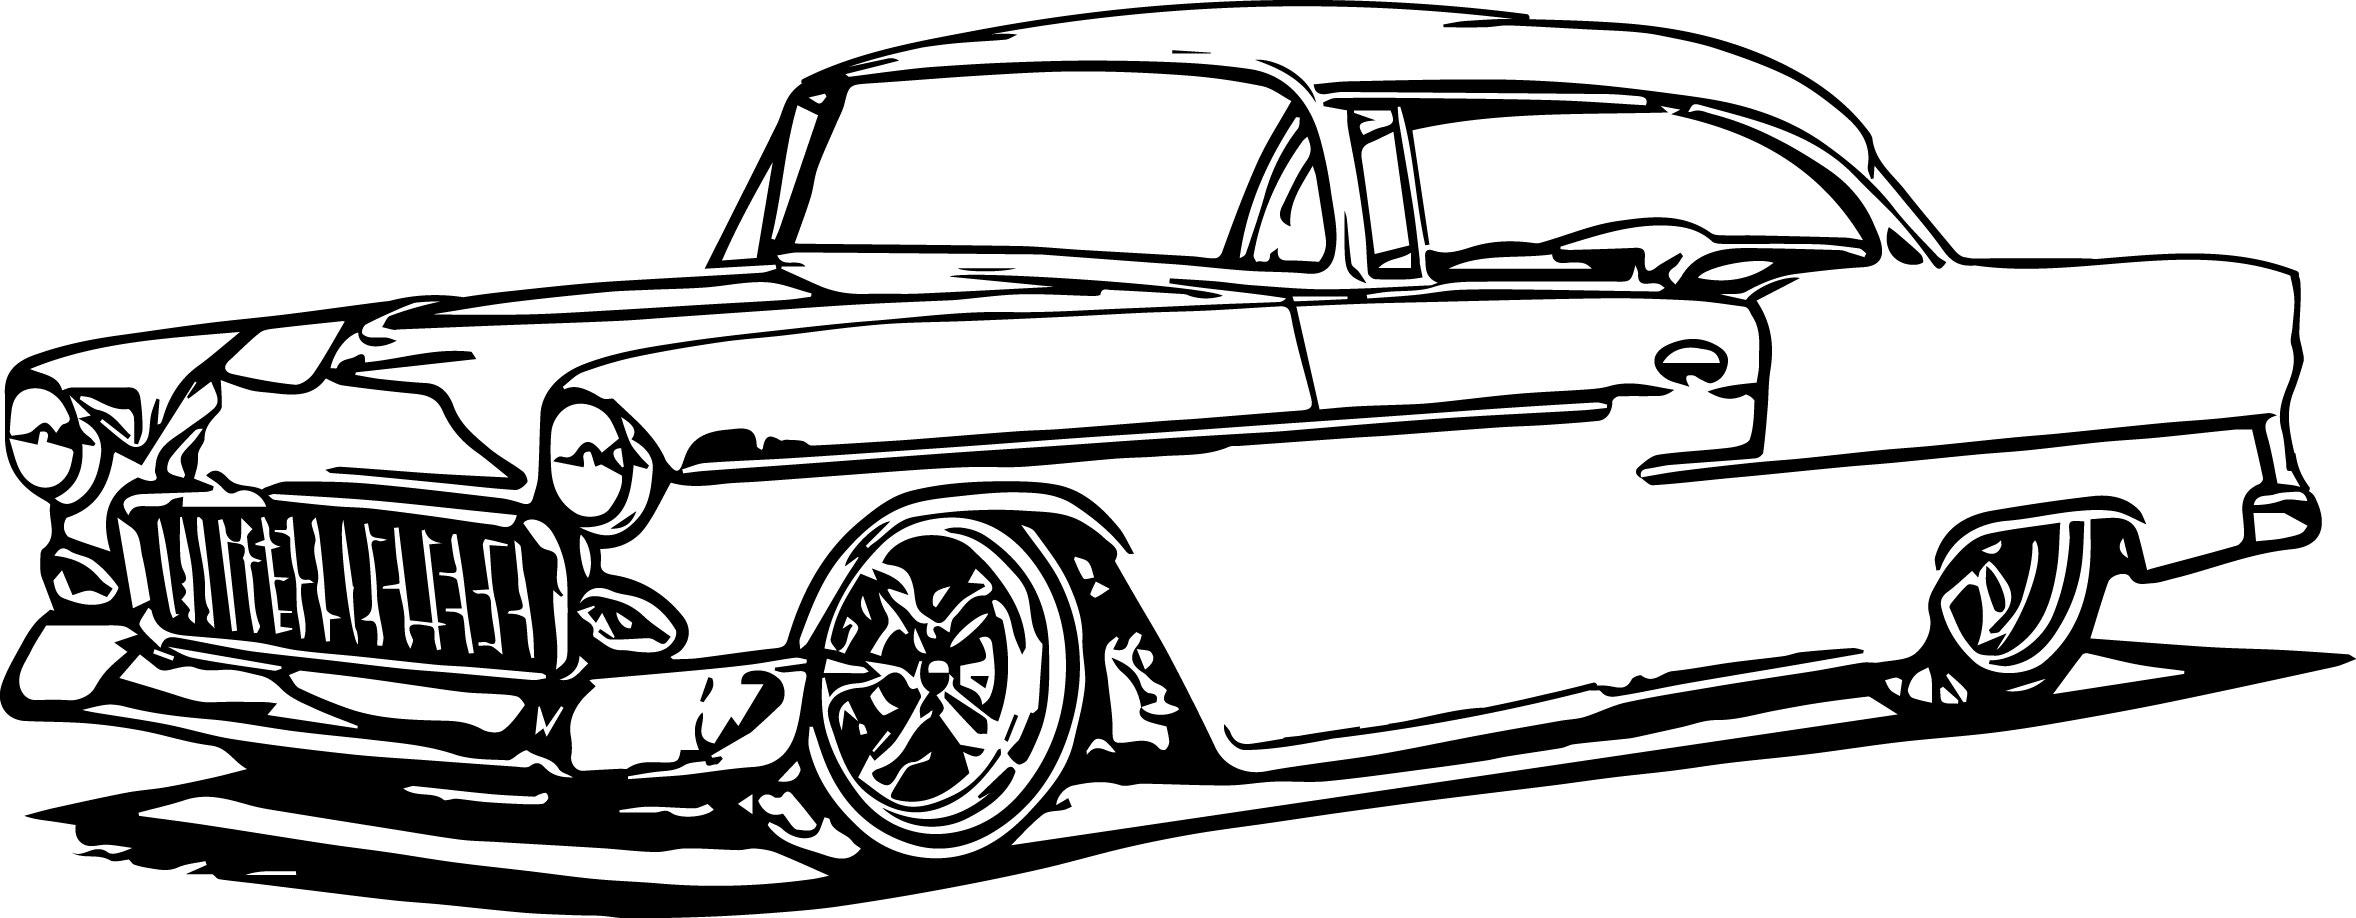 Antique Car Sketch Templates together with 558798266242899628 likewise Blank Fruit Coloring Pages as well Fishbone Diagram Template further Watts. on blank automotive templates